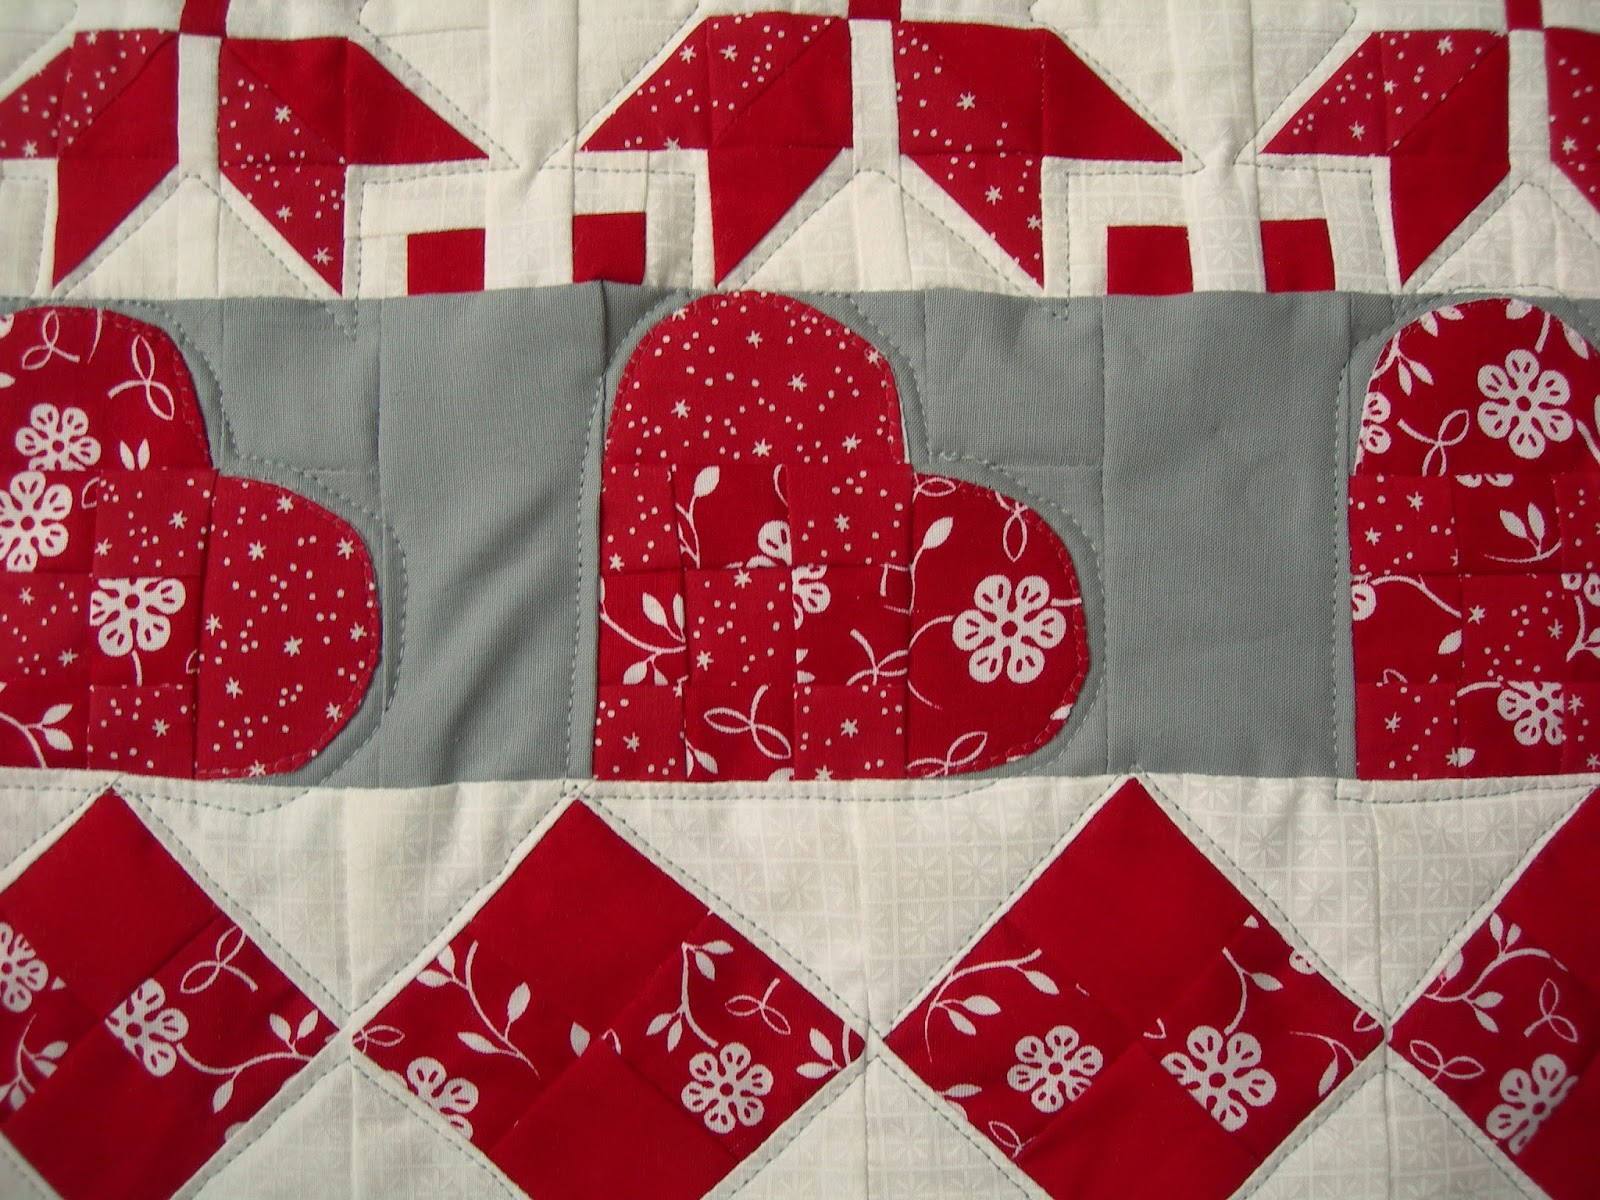 Simple Quilting by Susie @ Susie's Sunroom